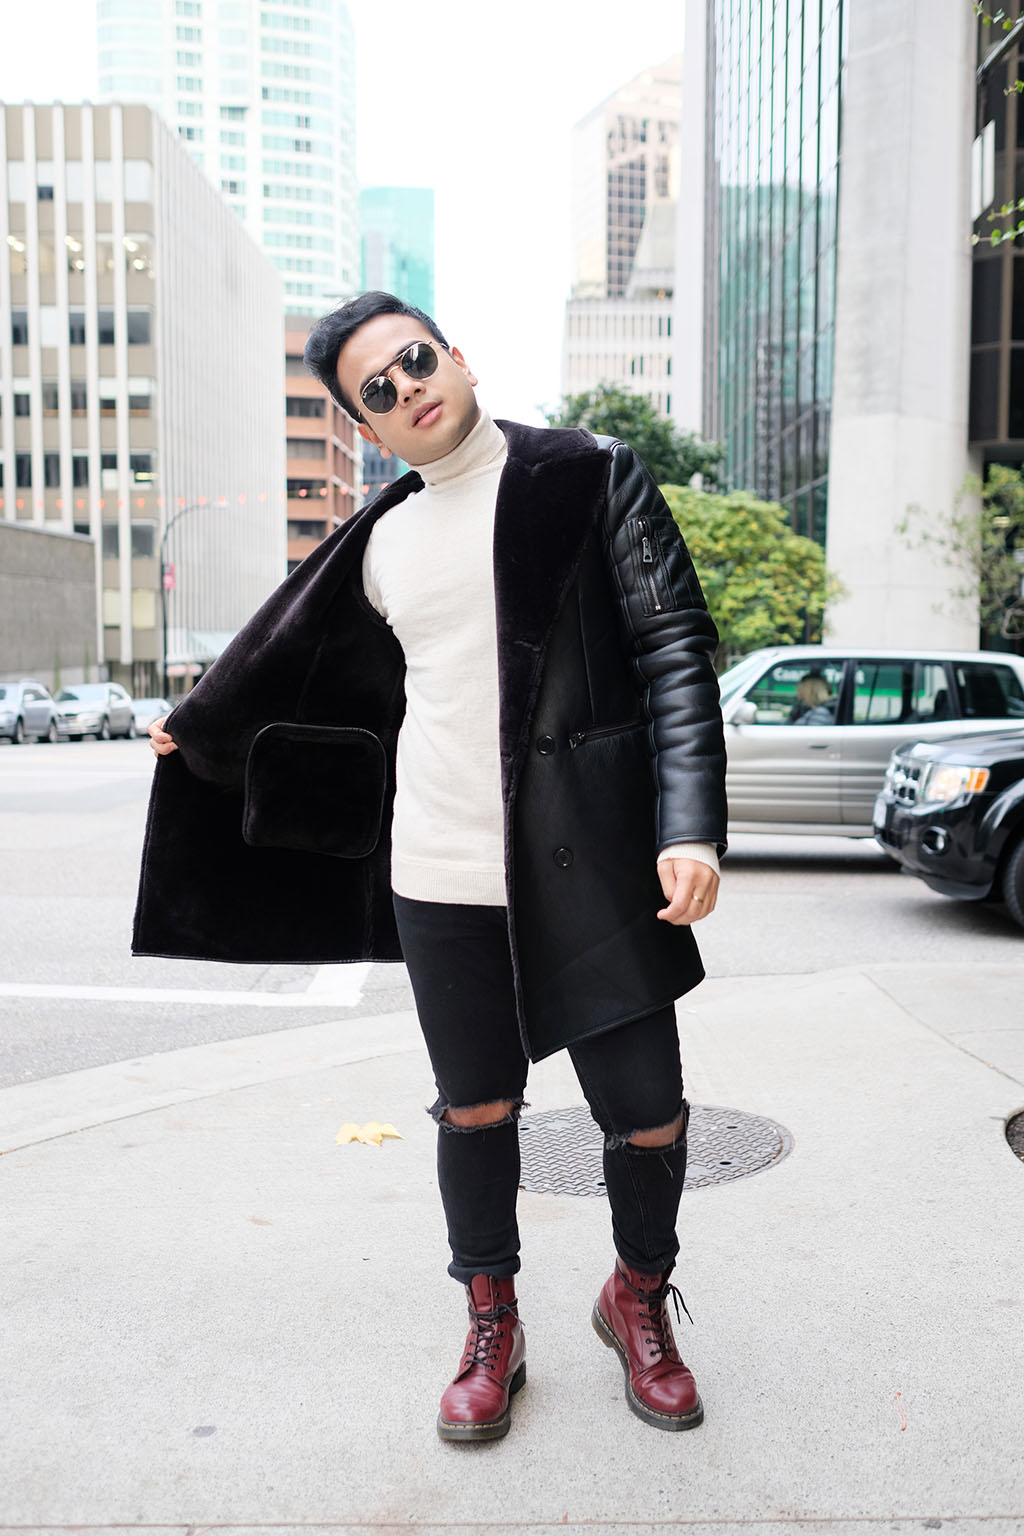 Jonathan Waiching Ho_Canadian Fashion Blogger_Top Mens Fashion Blogger Canada_1